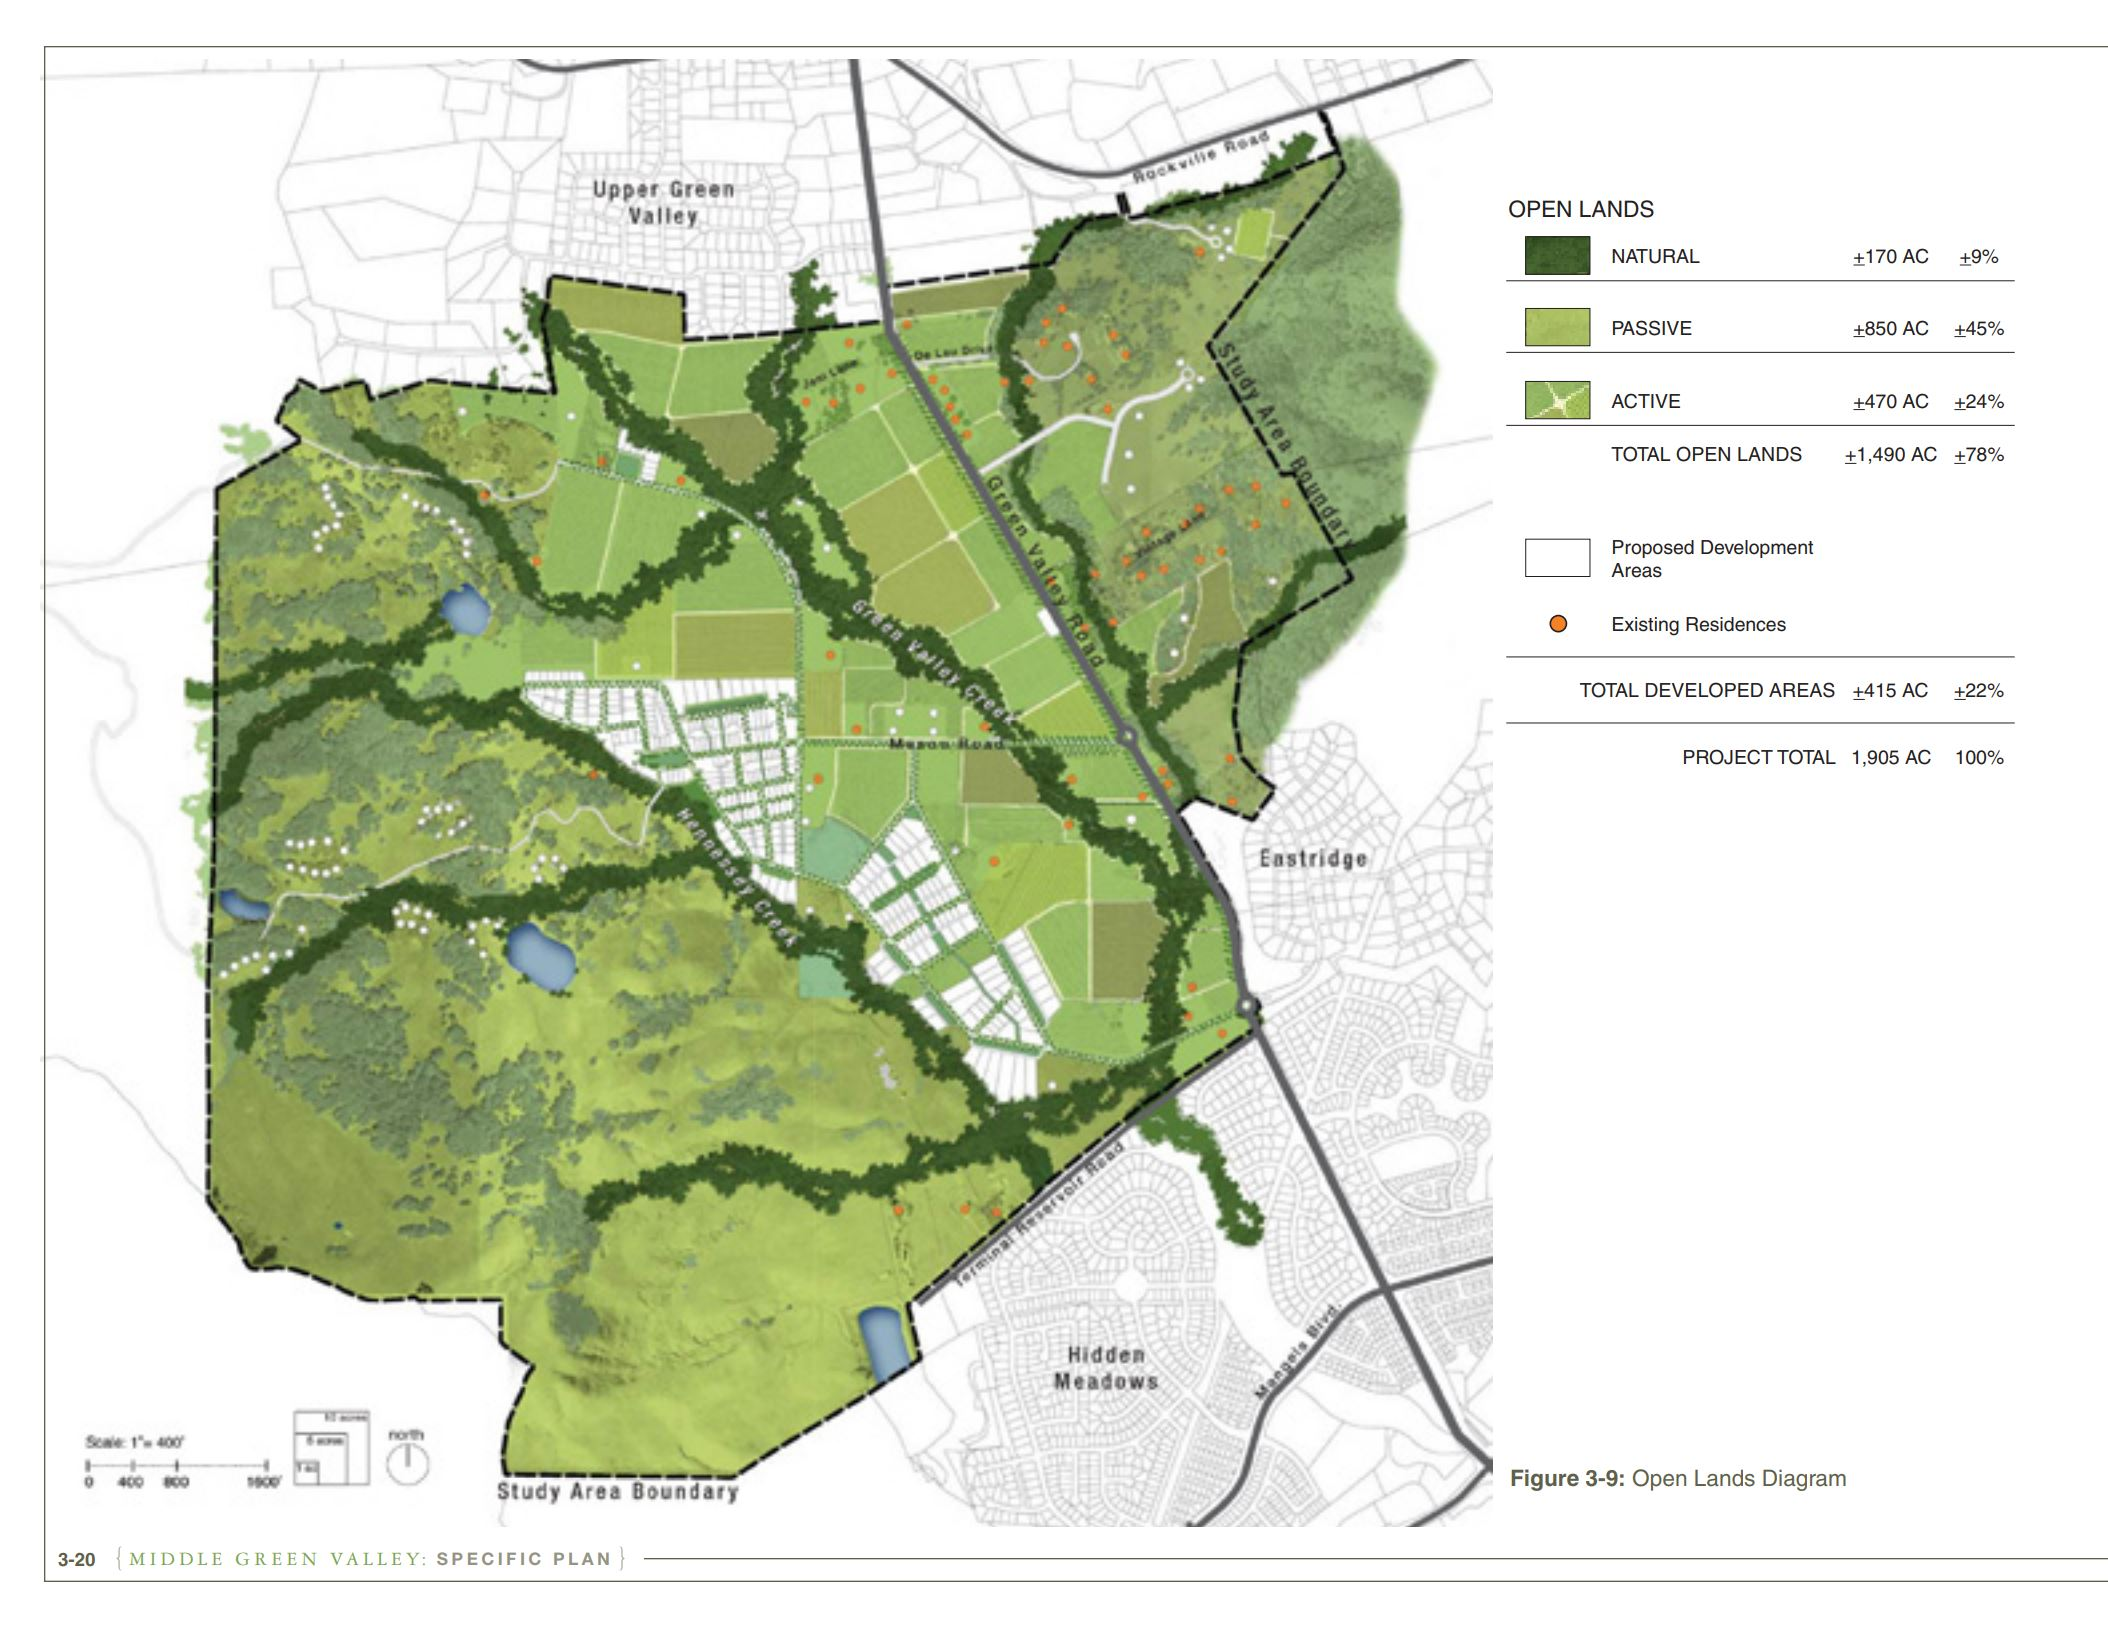 The Middle Green Specific Plan is designed to protect +1800 acres of open lands and working ranches and valuable vineyards. Once the limited development is allowed to be built, the remaining lands will be protected by Conservation Easements in perpetuity.